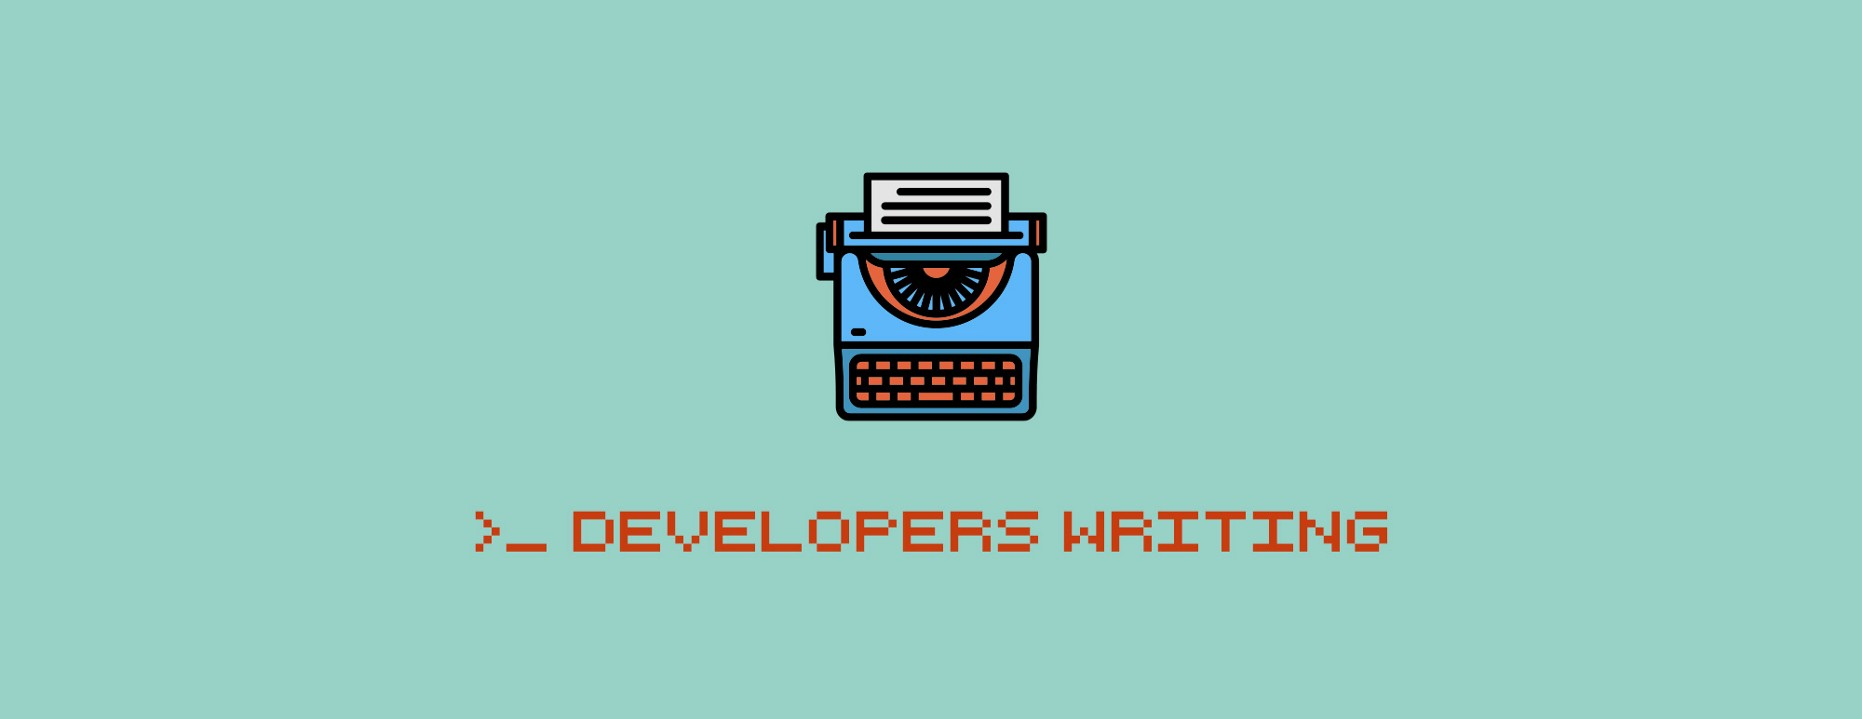 Developers Writing